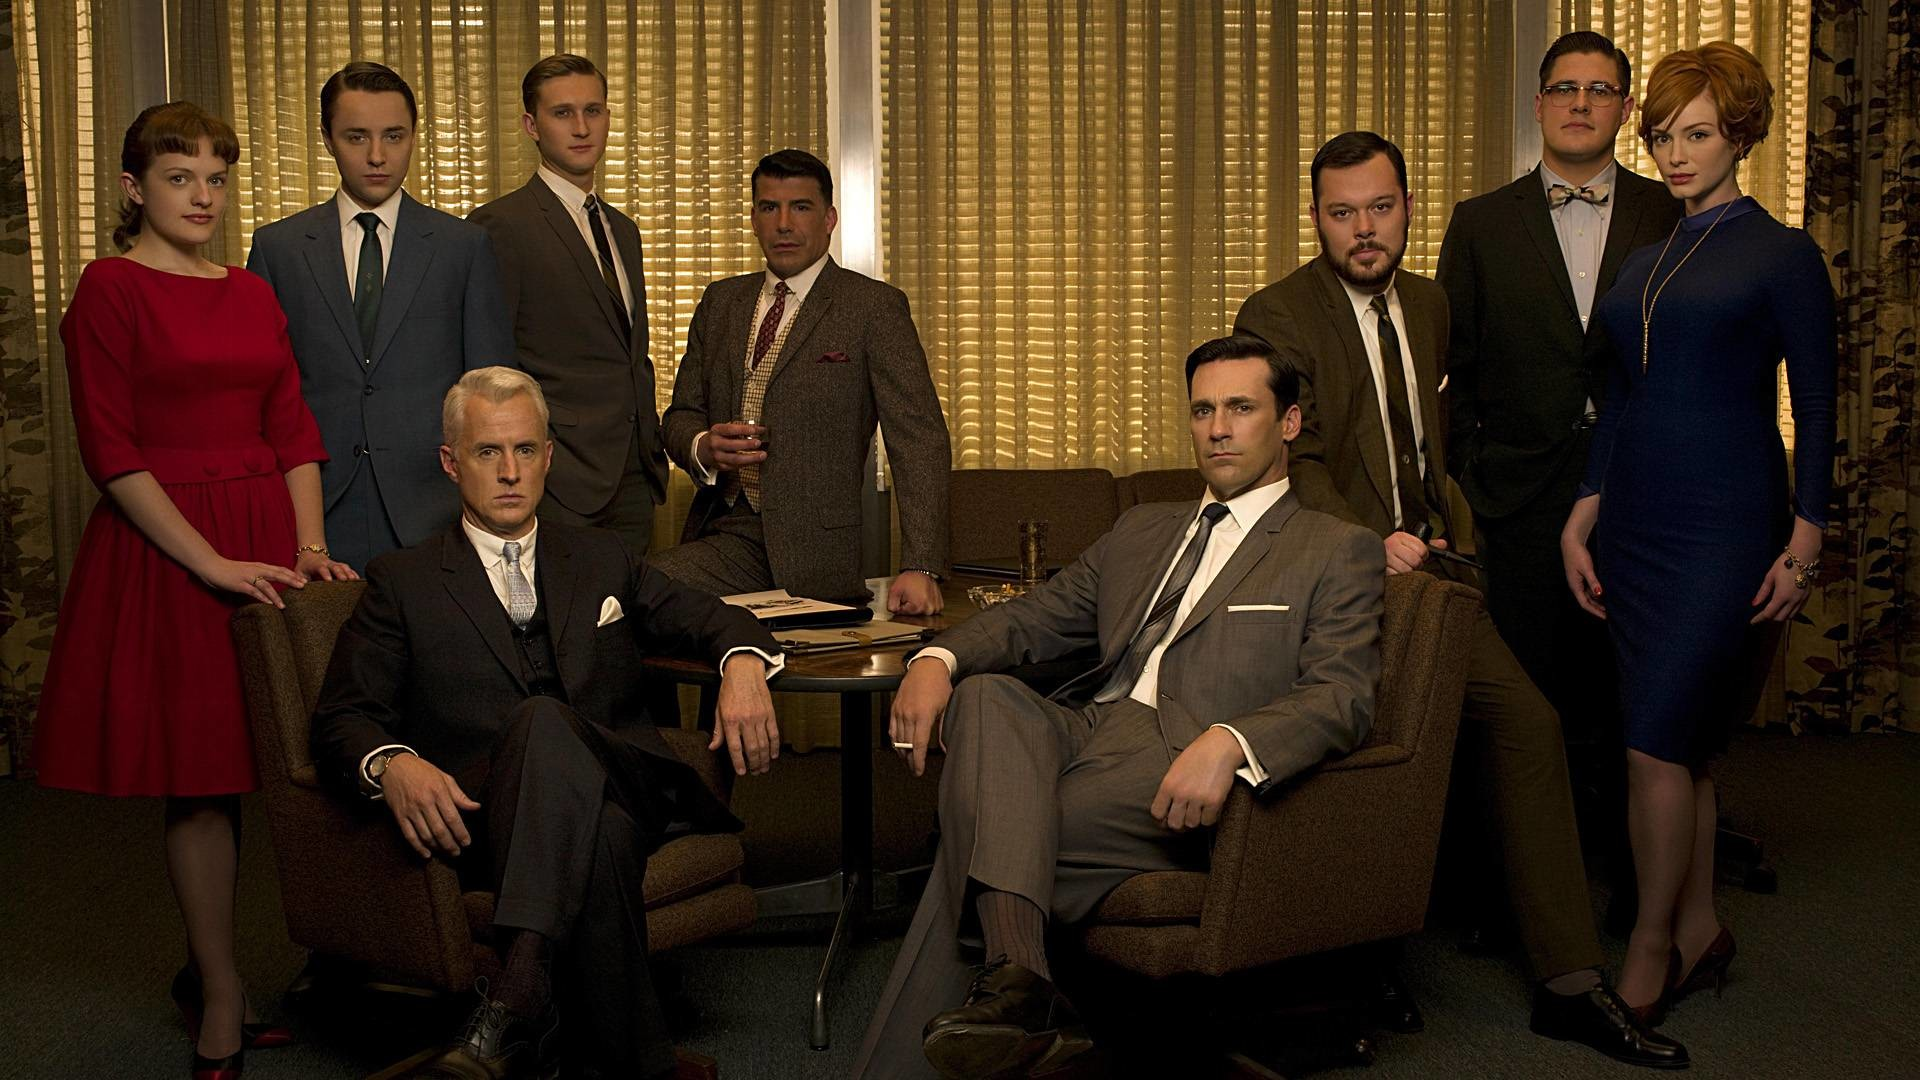 1920x1080 Image of Mad Men in HD Quality